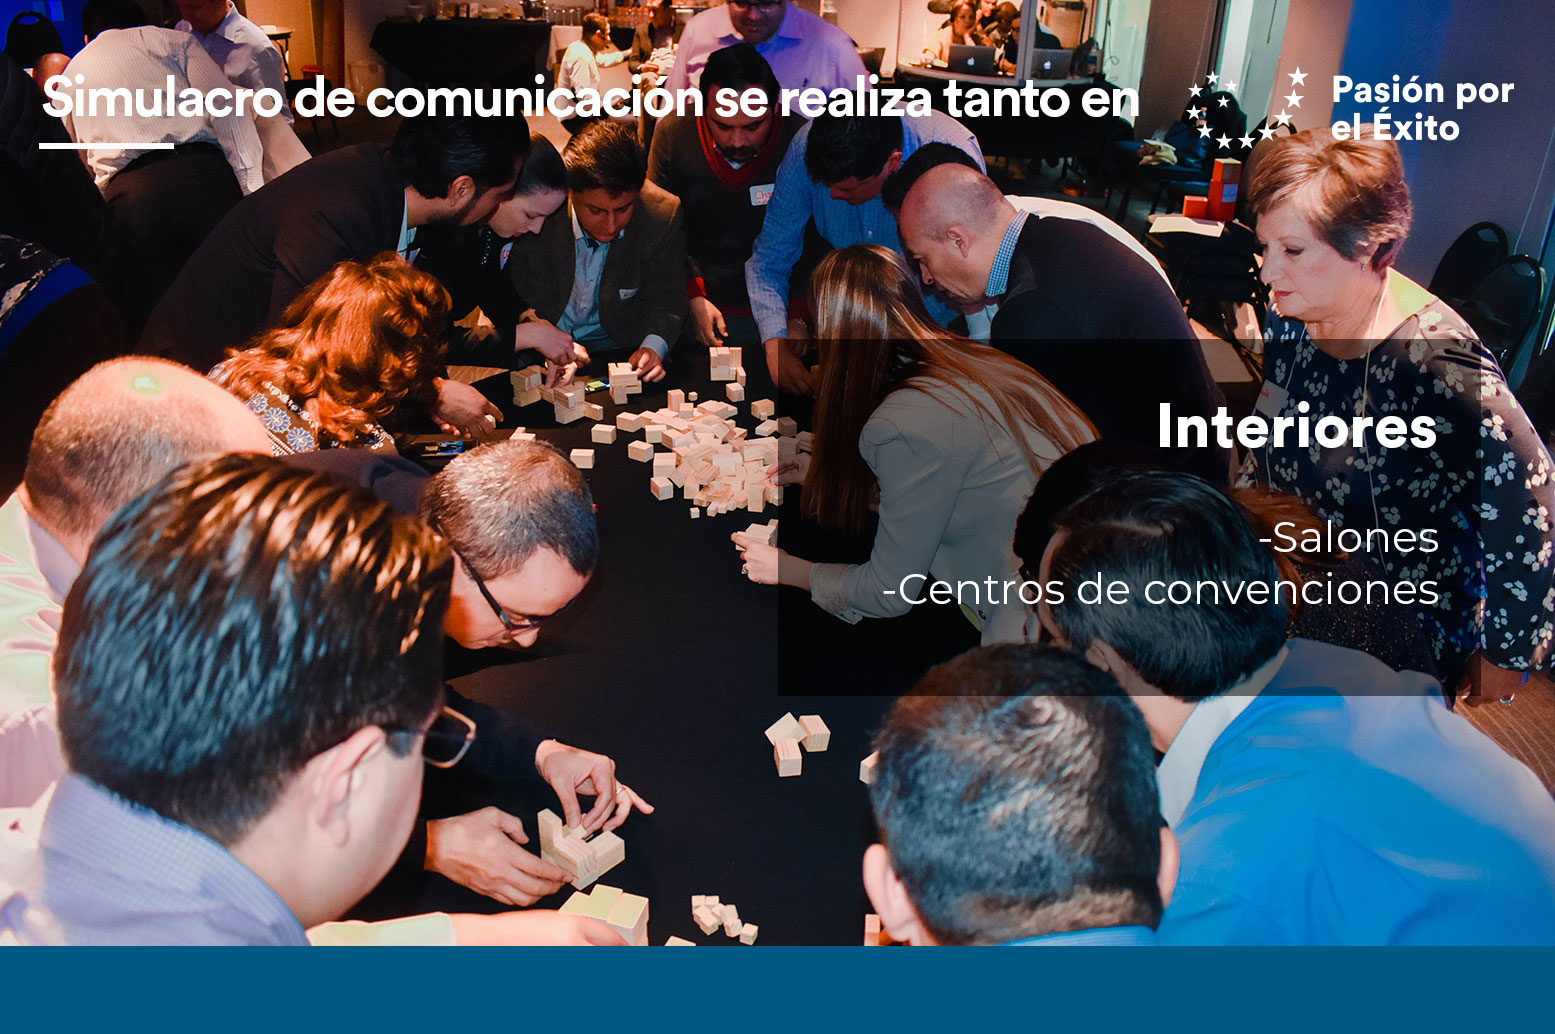 dinamica-de-integracion-y-team-building-int-sim-com